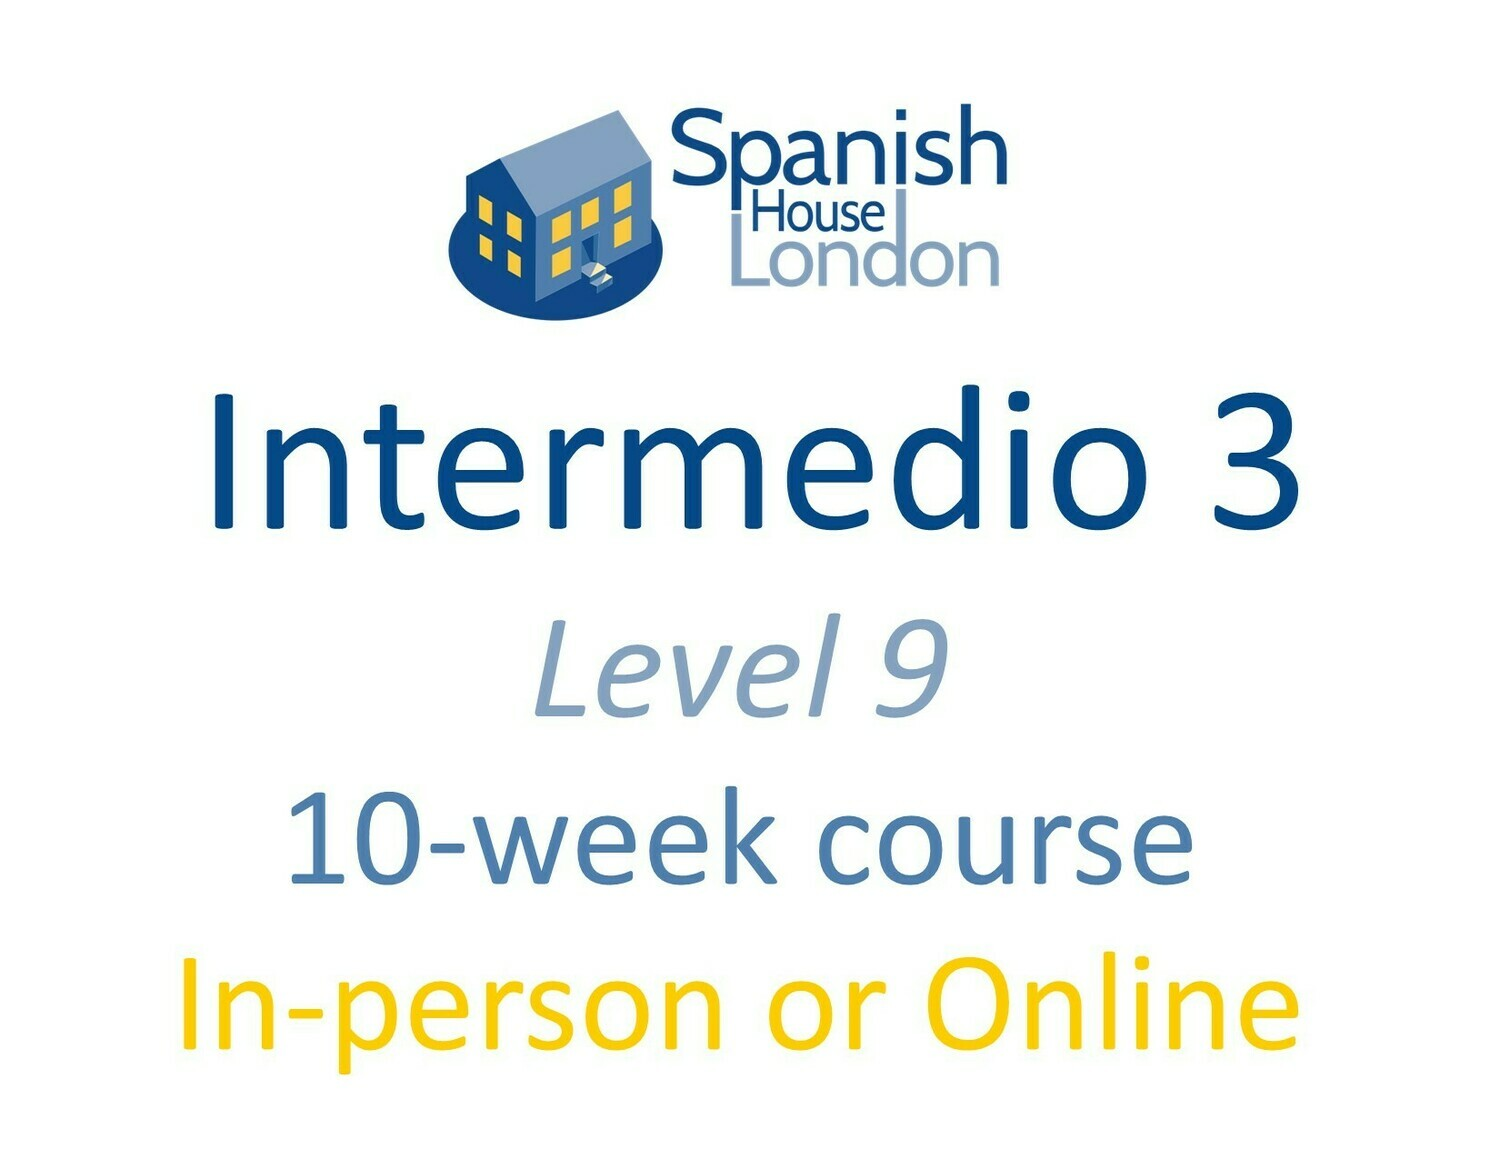 Intermedio 3 Course starting on 6th September at 6pm in Clapham North